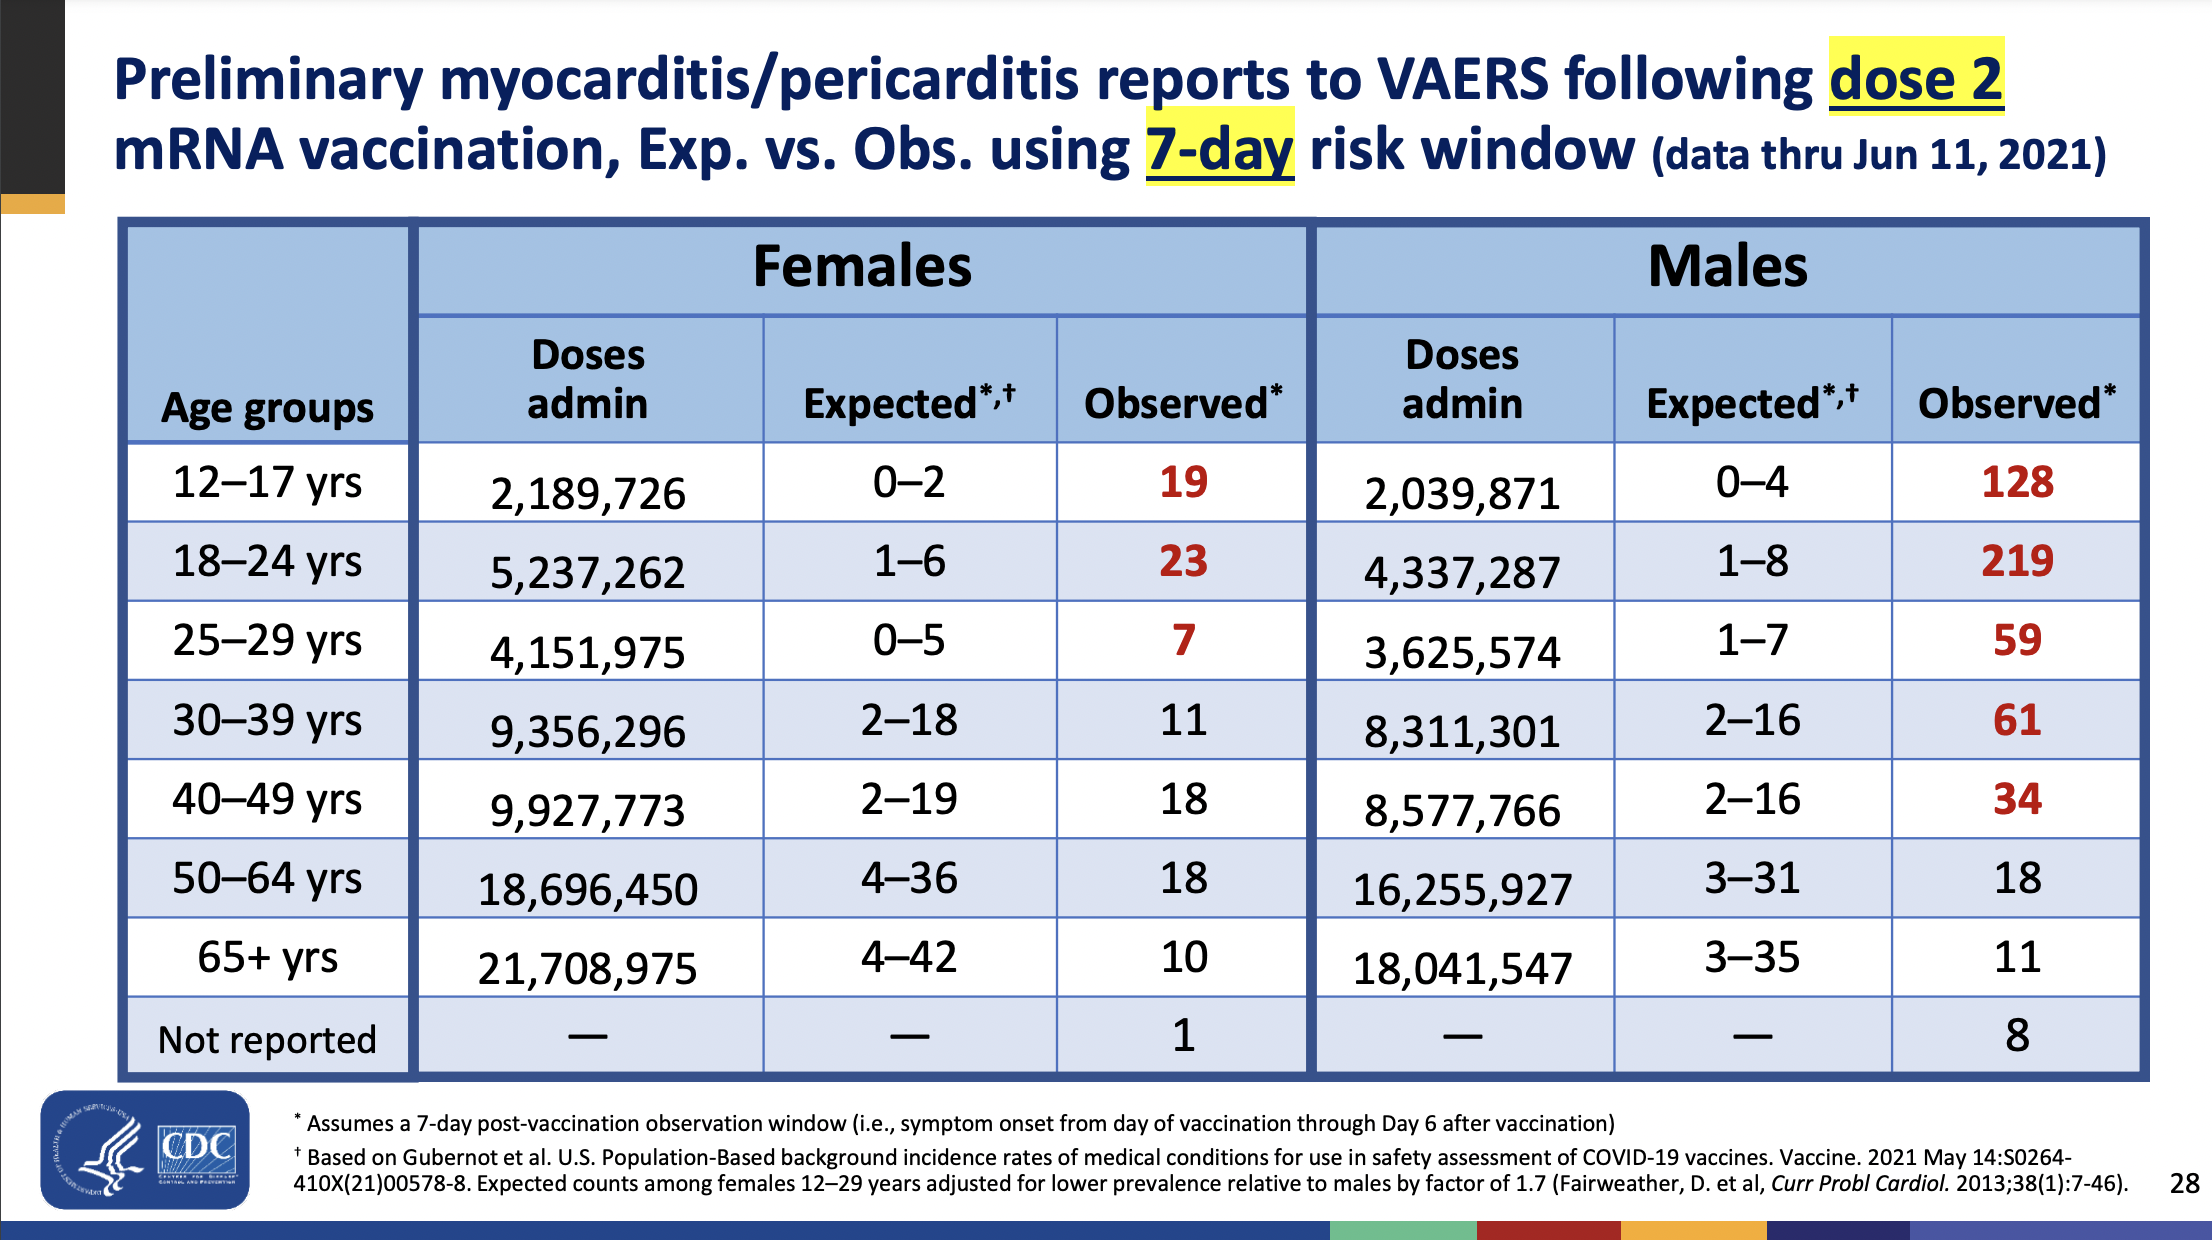 Observed vs. expected myocarditis cases.